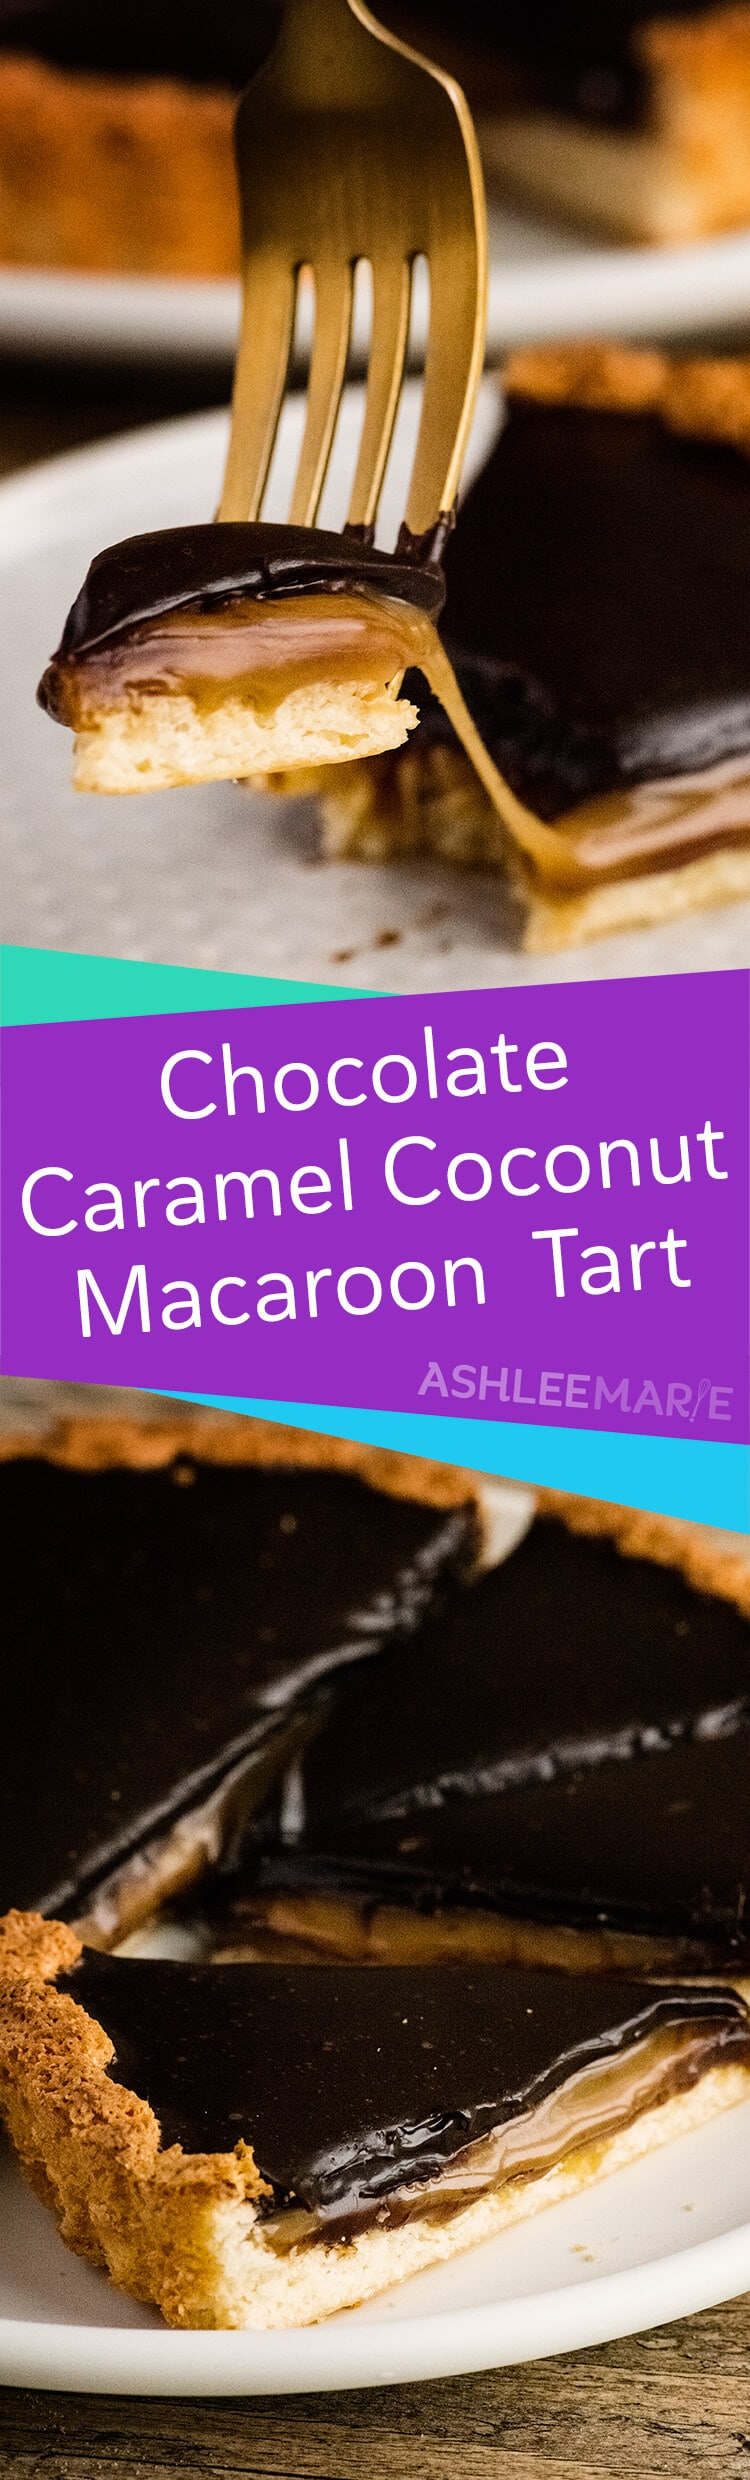 Chocolate caramel coconut macaroon tart recipe